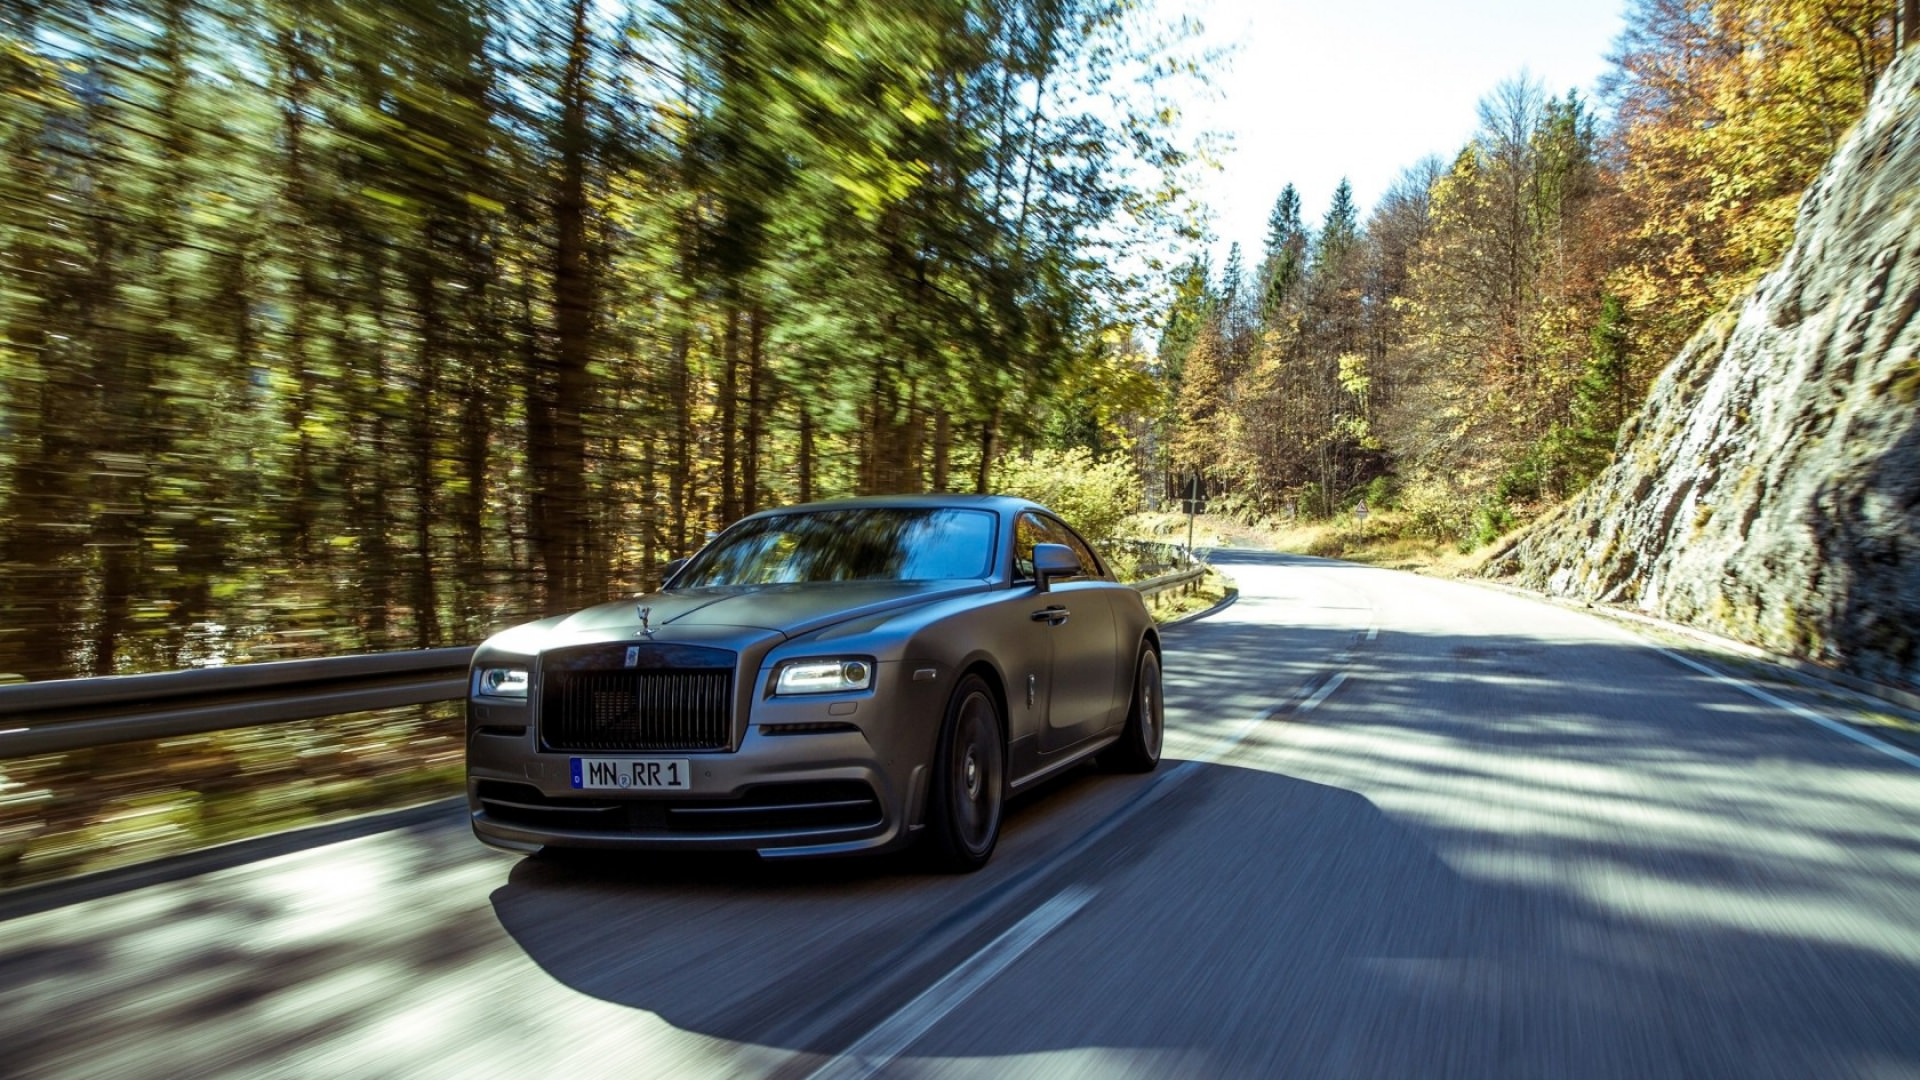 Speeding Rolls Royce Car Background